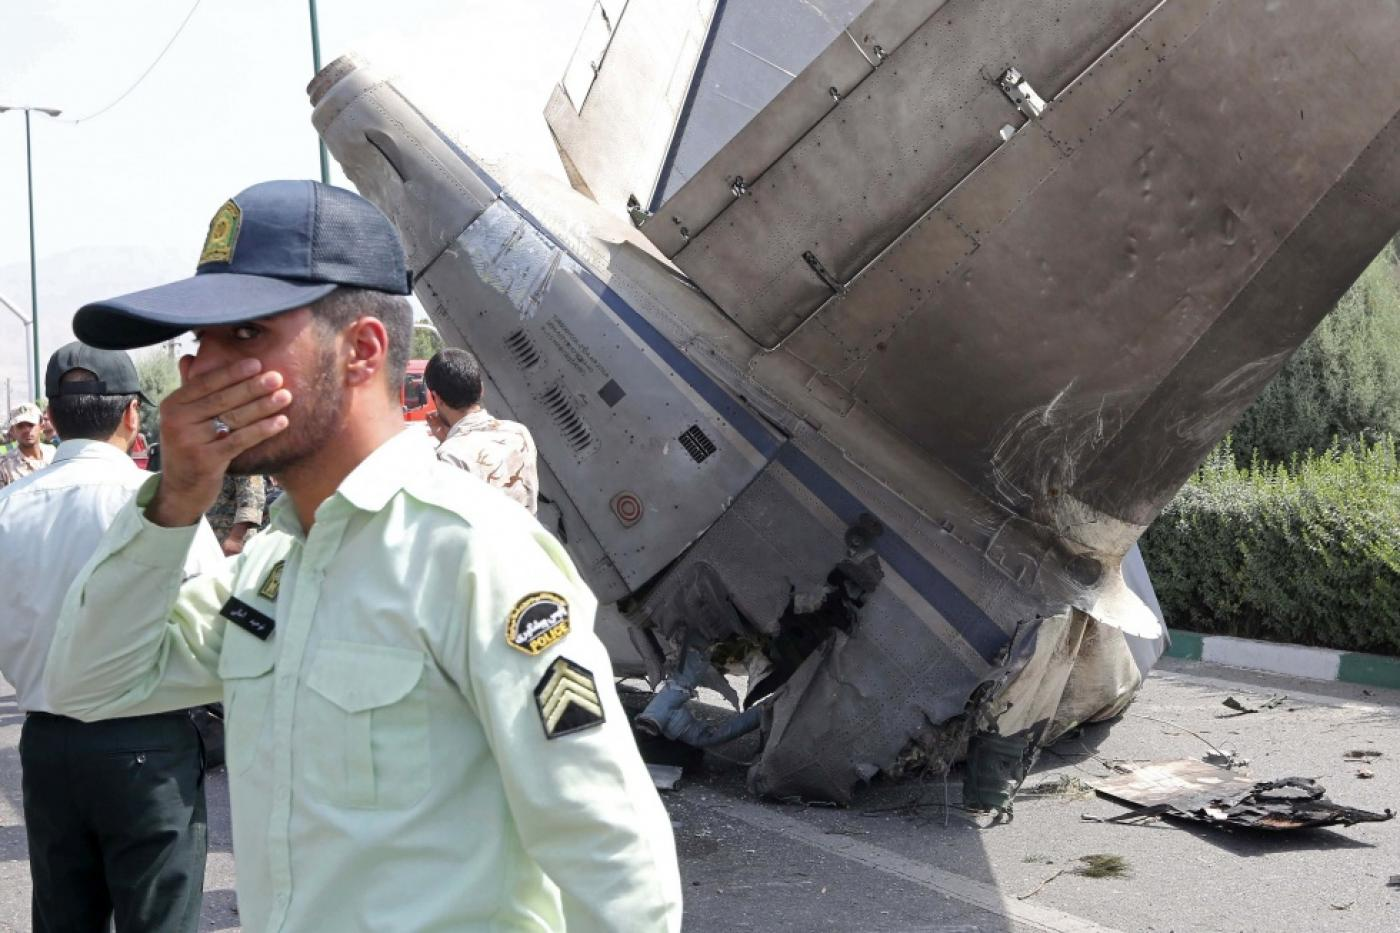 Iran airliner crashes killing at least 38 | Middle East Eye